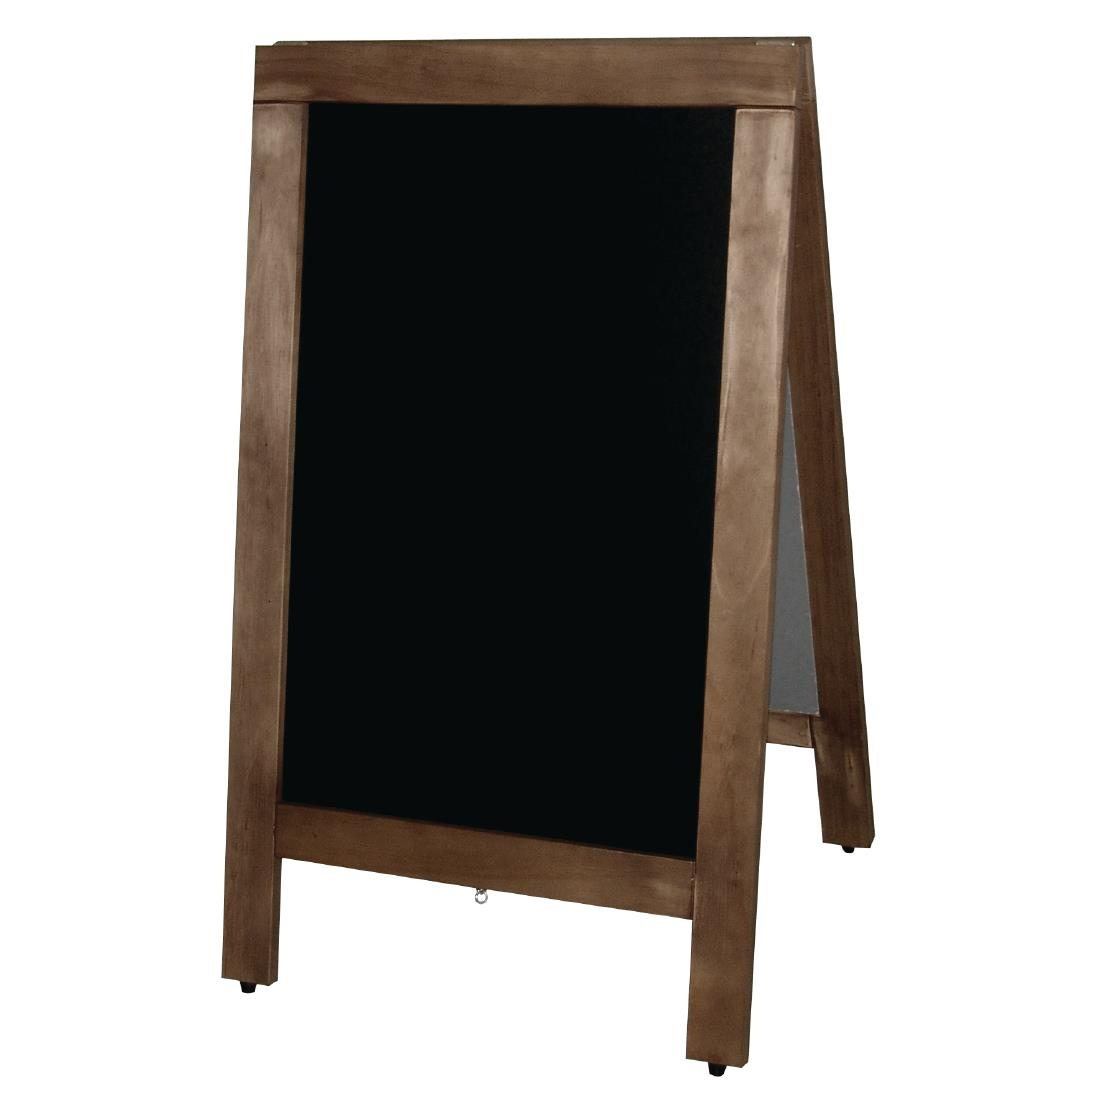 Olympia Pavement Board Wood Framed